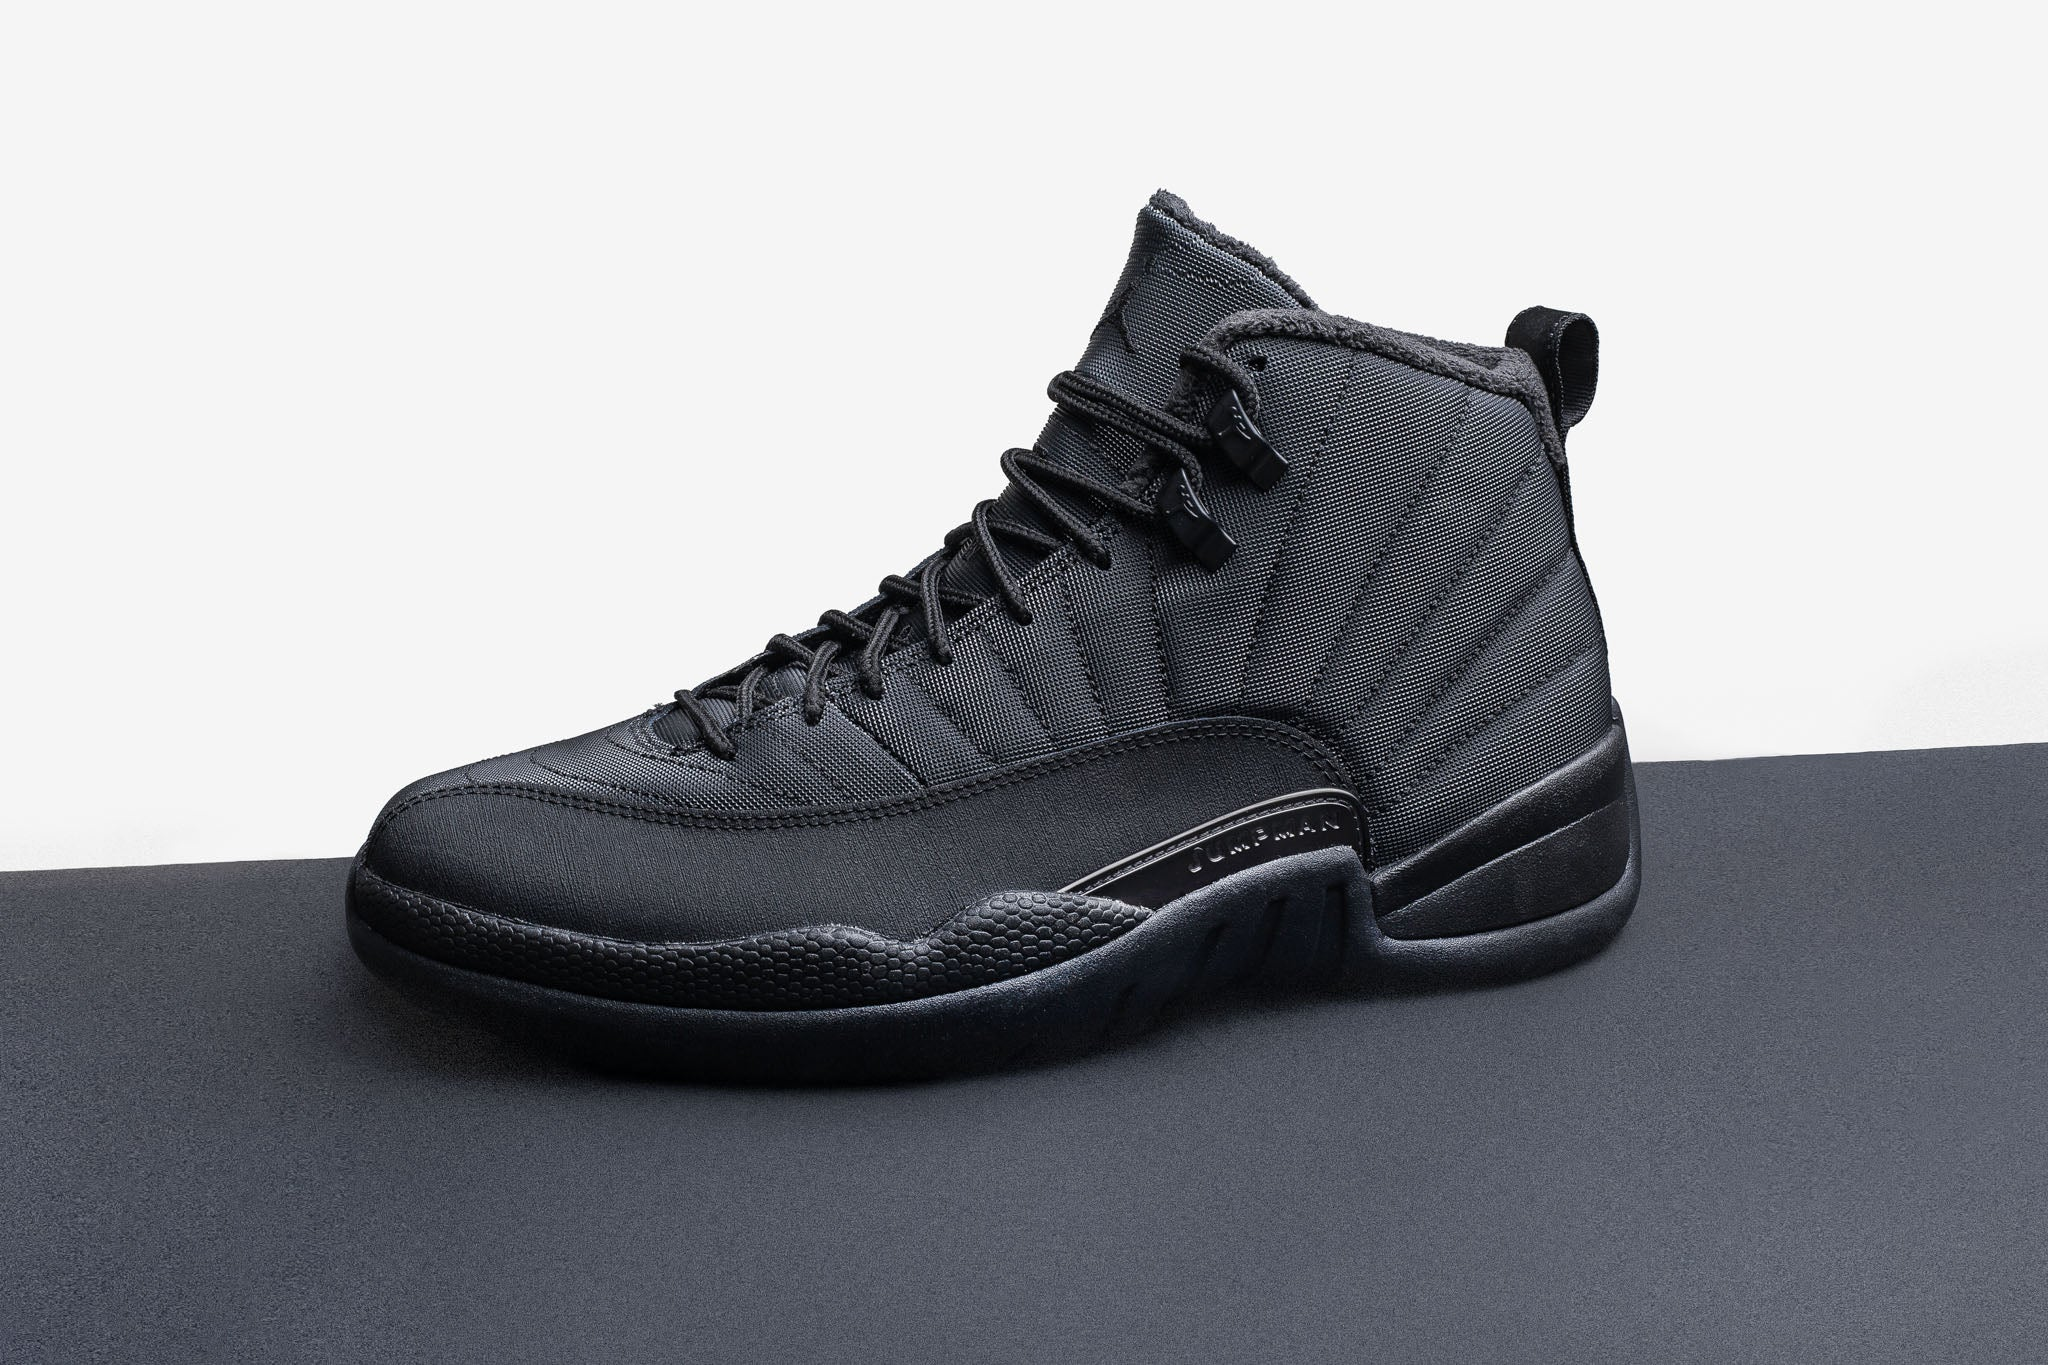 b02940df55c The latest Air Jordan 12 Retro is ready to take on anything winter can  throw back with resilient